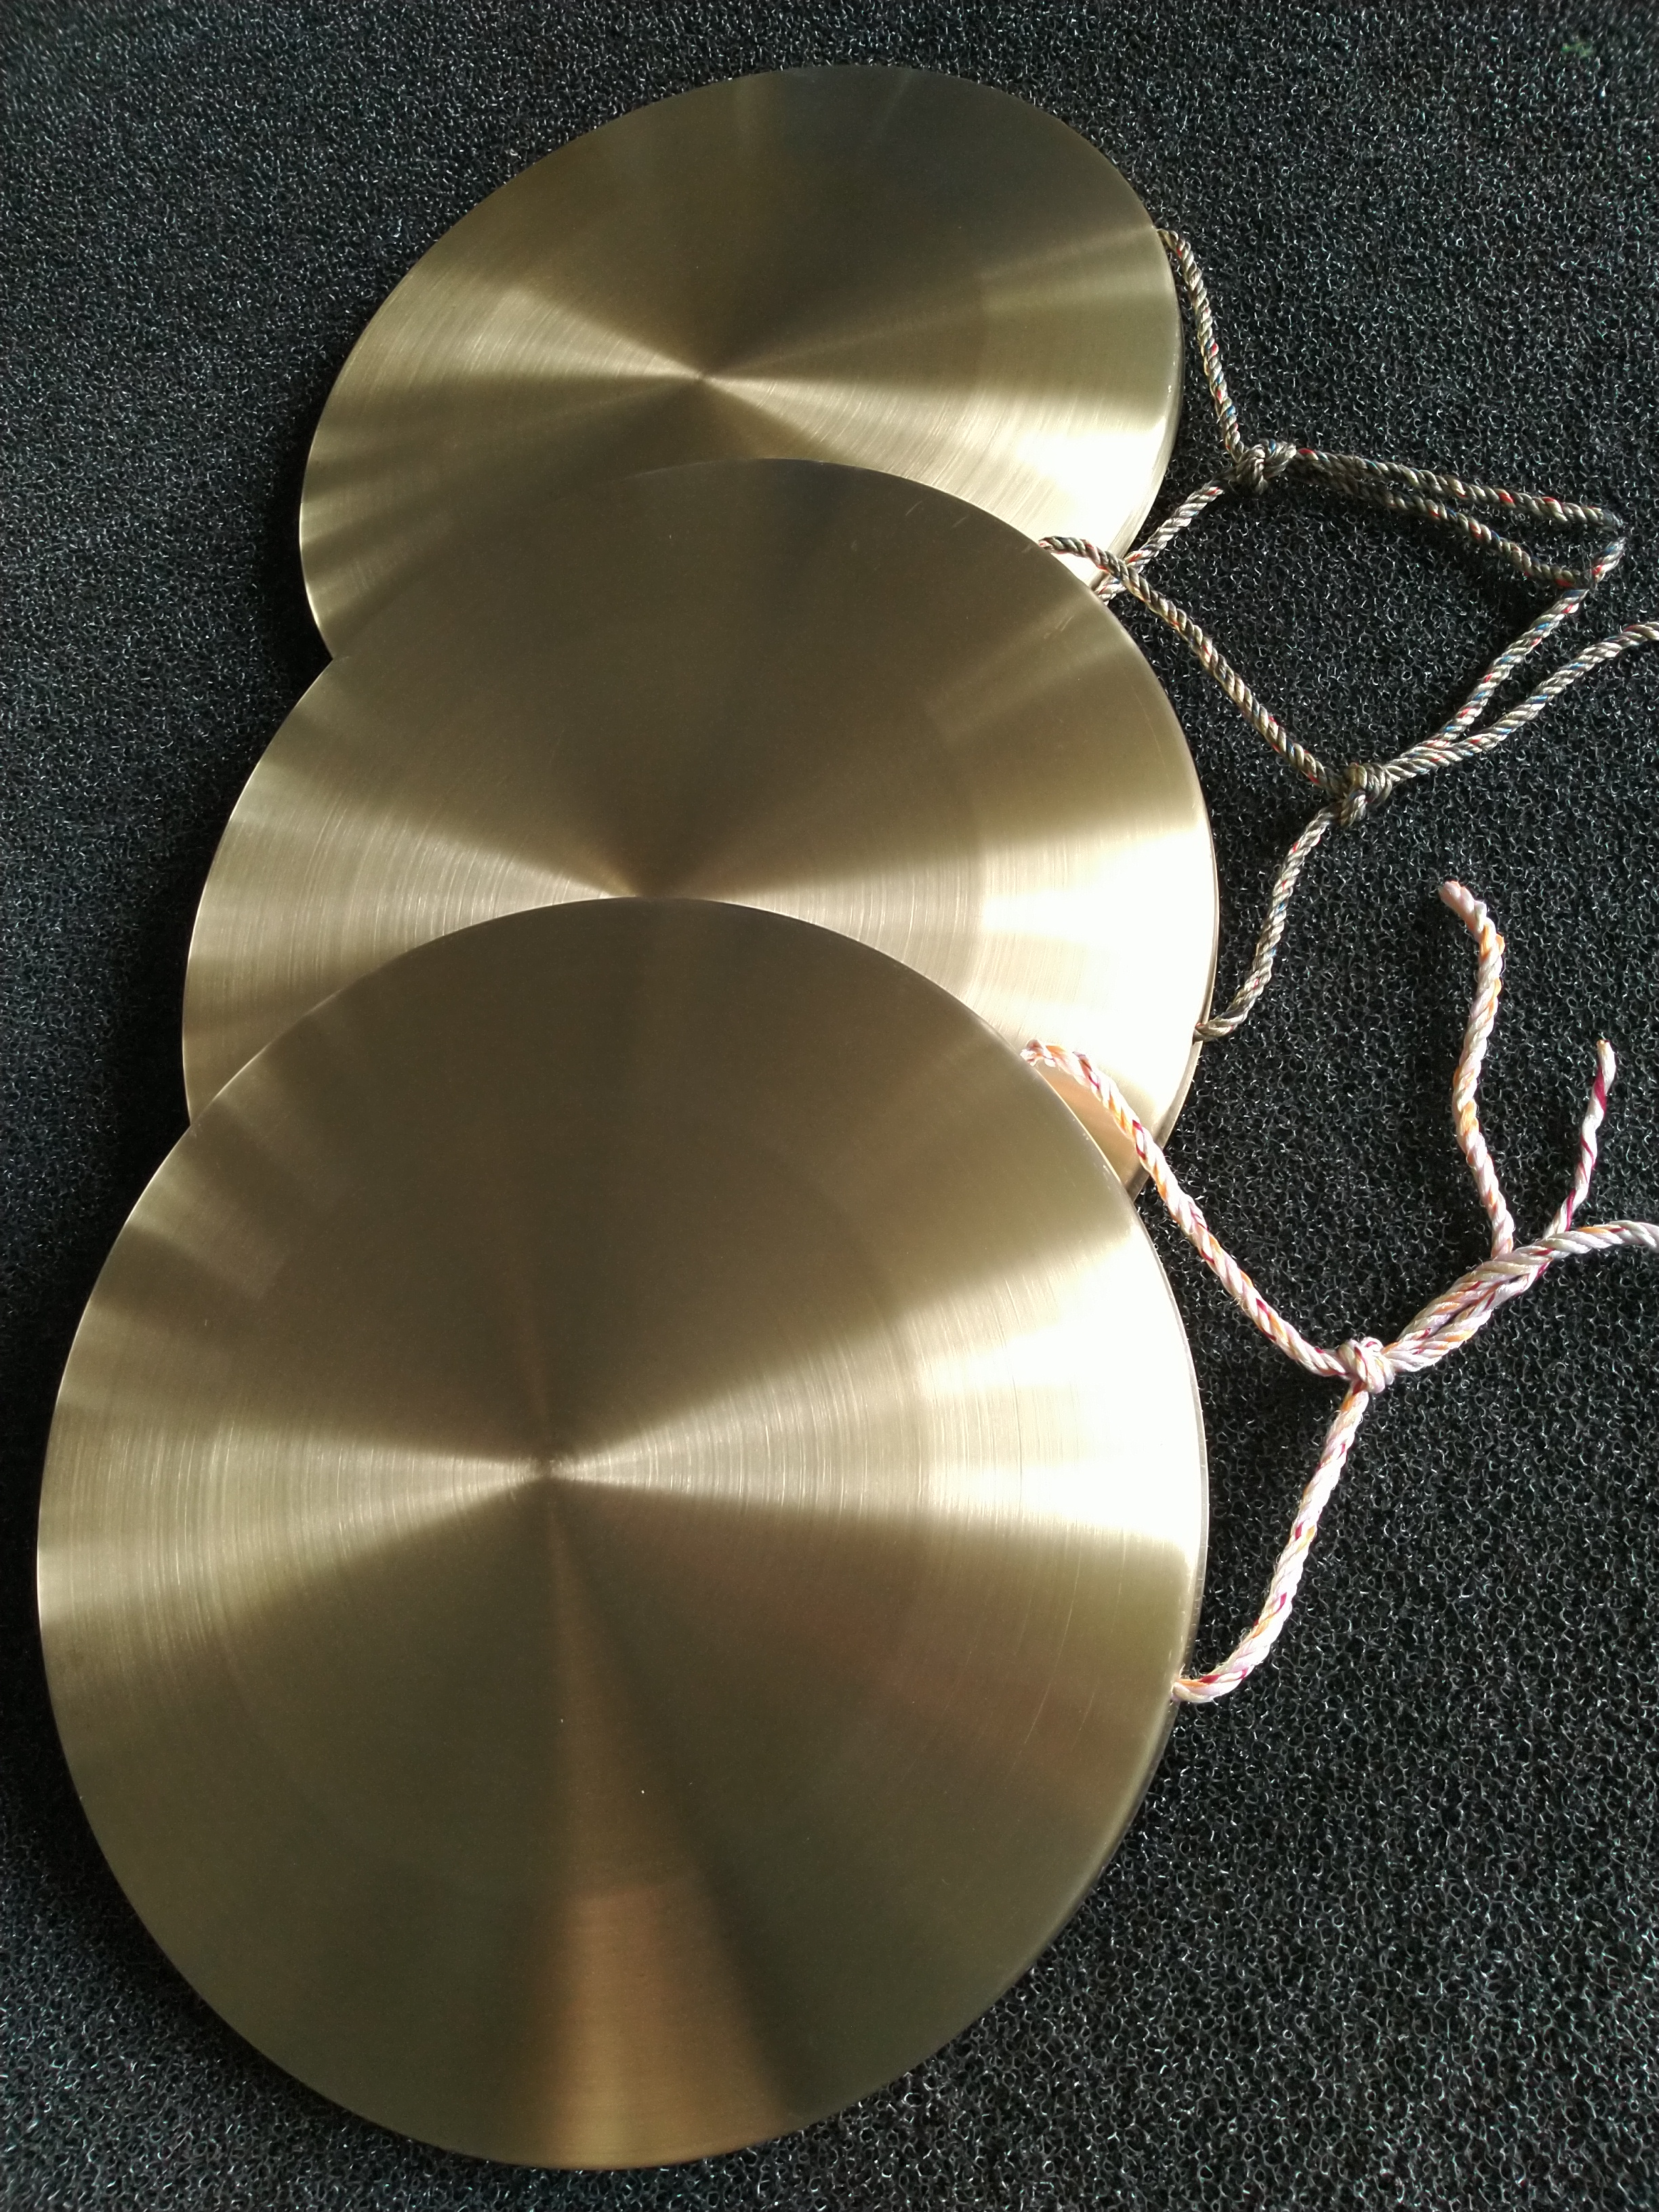 Instrument Handmade Gongs